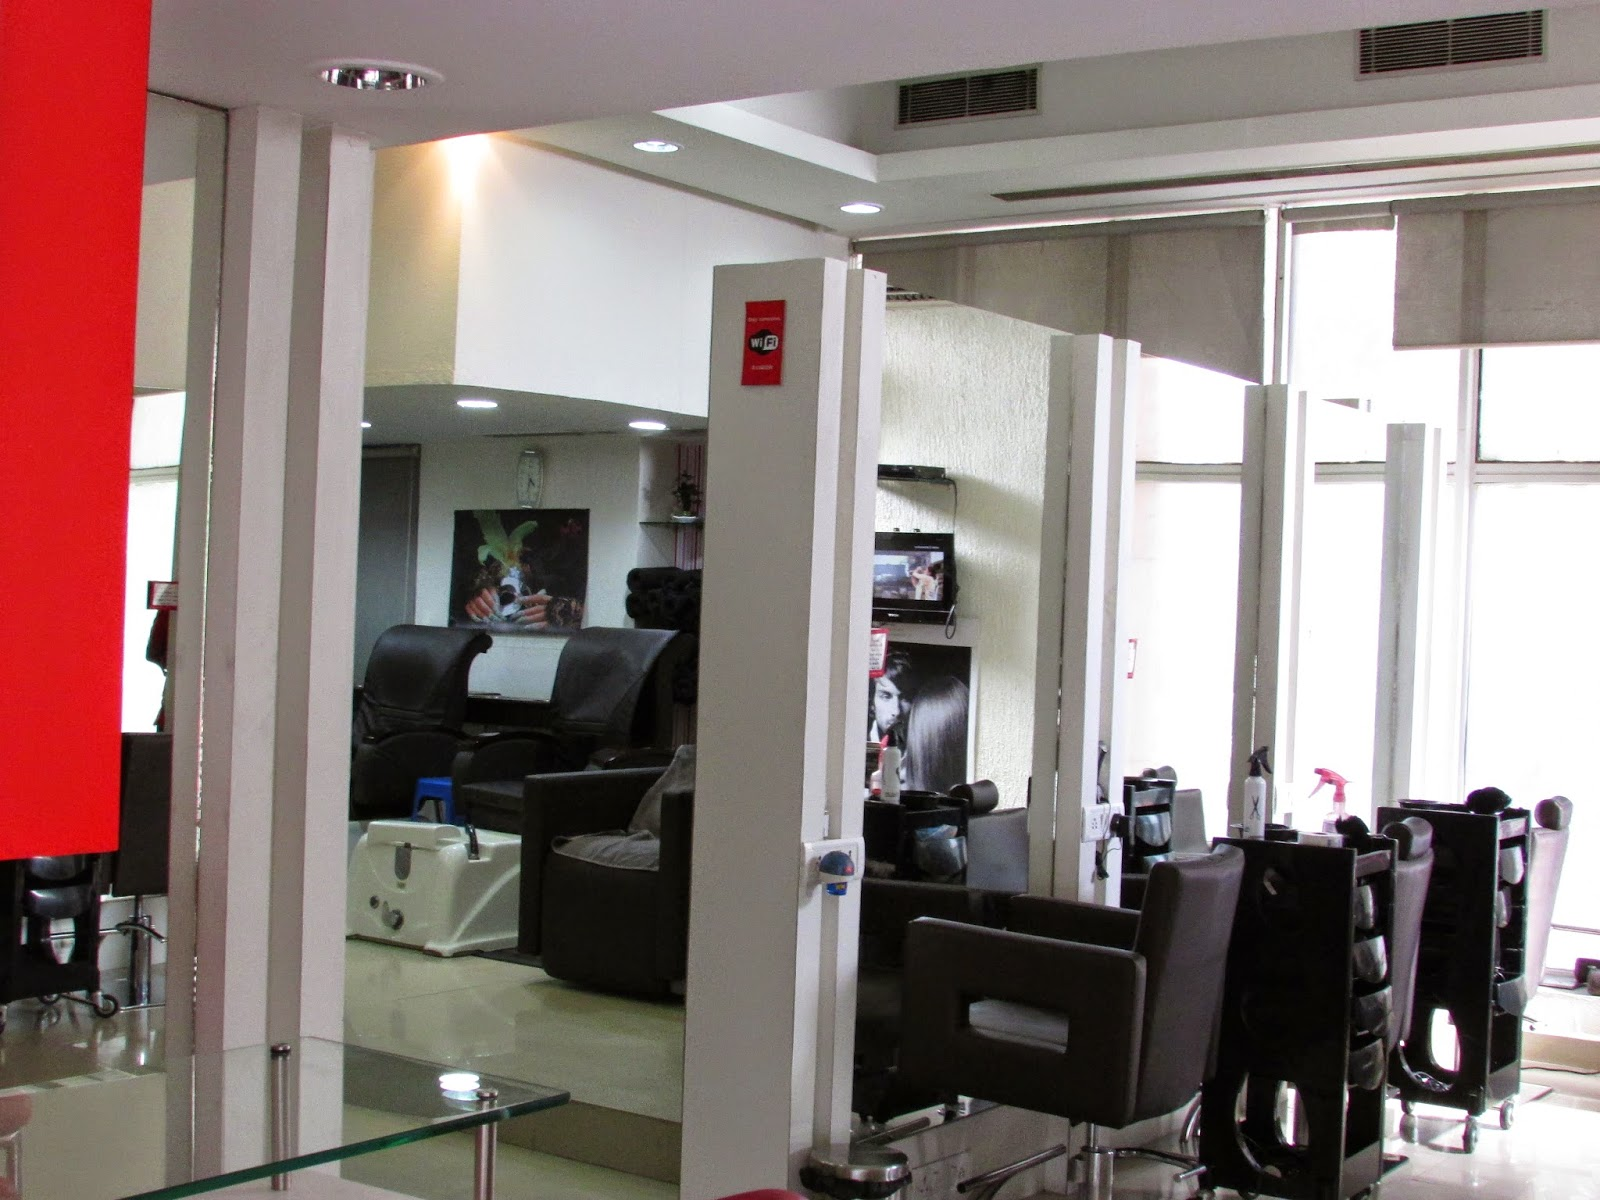 Limelite Salon & Spa Review, Limelite Salon & Spa services, Facial for sensitive skin, Facial for acne prone skin, Facial for aging skin, Limelite Noida, best salon delhi ncr , indian beauty blog, indian fashion blog, beauty , fashion,beauty and fashion,beauty blog, fashion blog , indian beauty blog,indian fashion blog, beauty and fashion blog, indian beauty and fashion blog, indian bloggers, indian beauty bloggers, indian fashion bloggers,indian bloggers online, top 10 indian bloggers, top indian bloggers,top 10 fashion bloggers, indian bloggers on blogspot,home remedies, how to